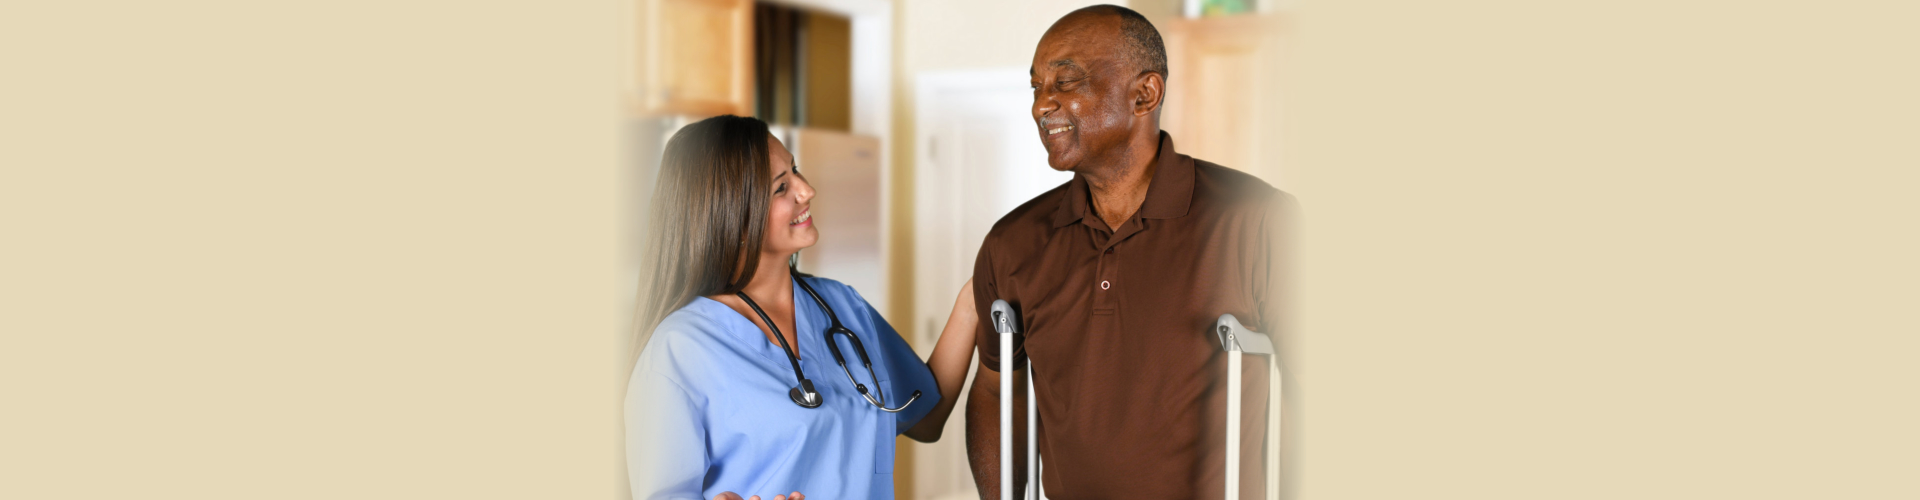 Health Care Worker and Elderly Patient